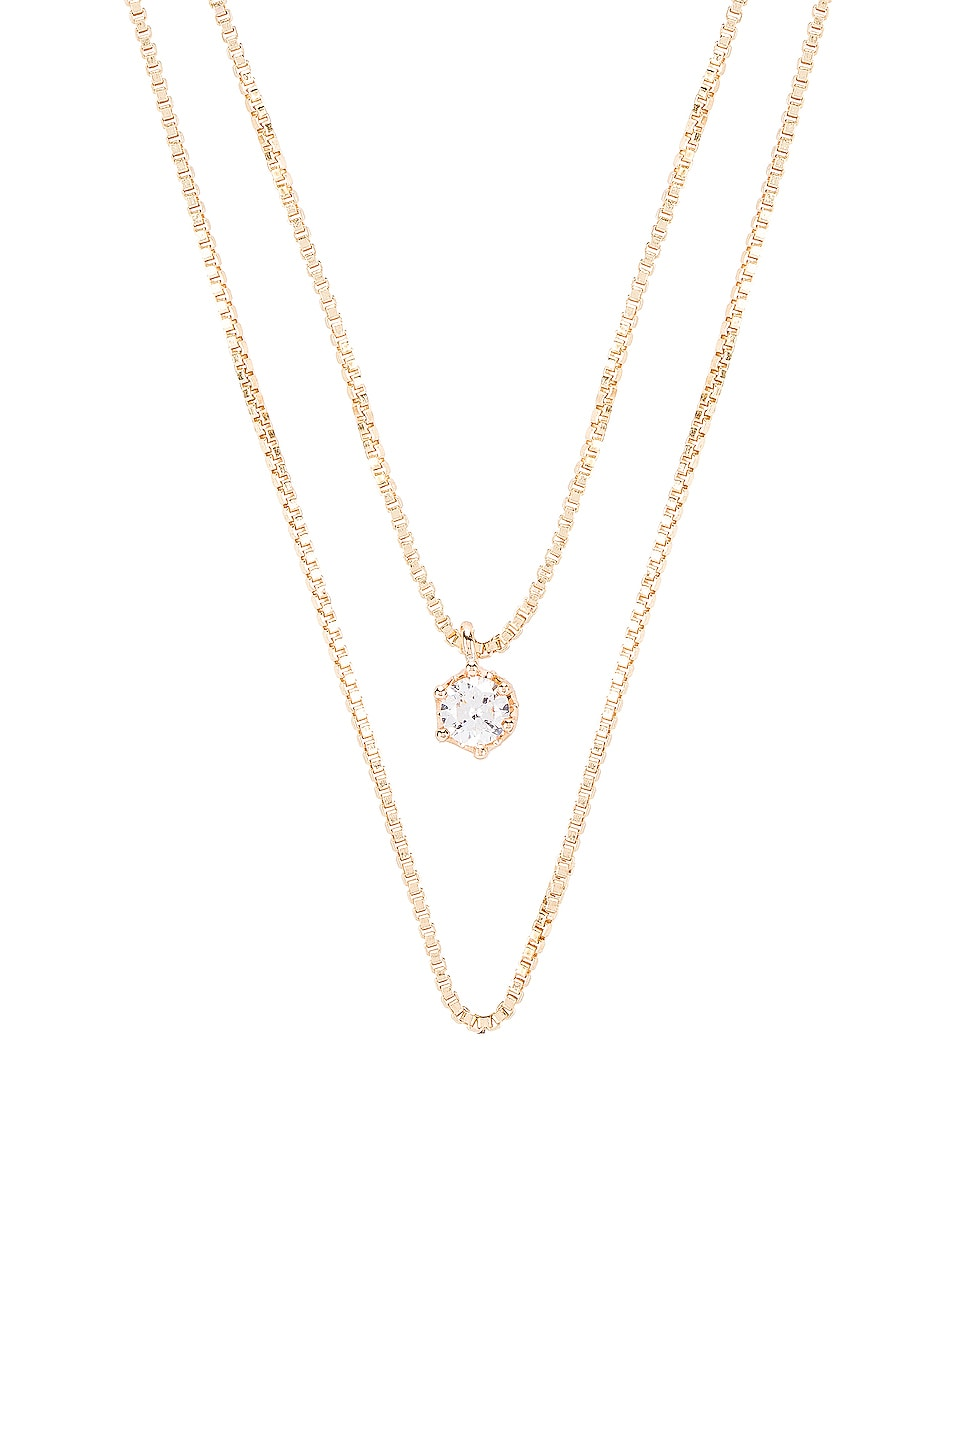 Natalie B Jewelry April Birthstone Necklace in Diamond